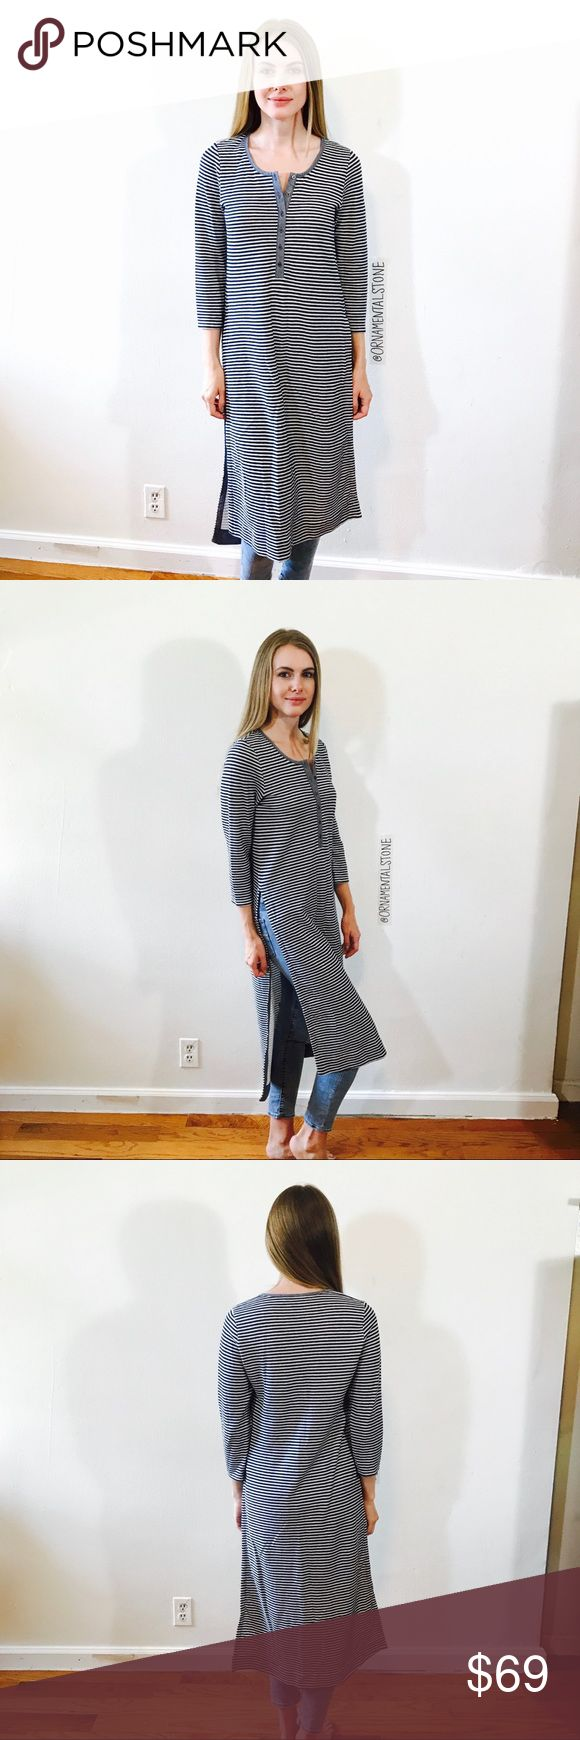 POSTMARK ANTHRO STRIPED EXTRA LONG TUNIC TOP #A68 EUC, no issues. Anthropologie Tops Tunics